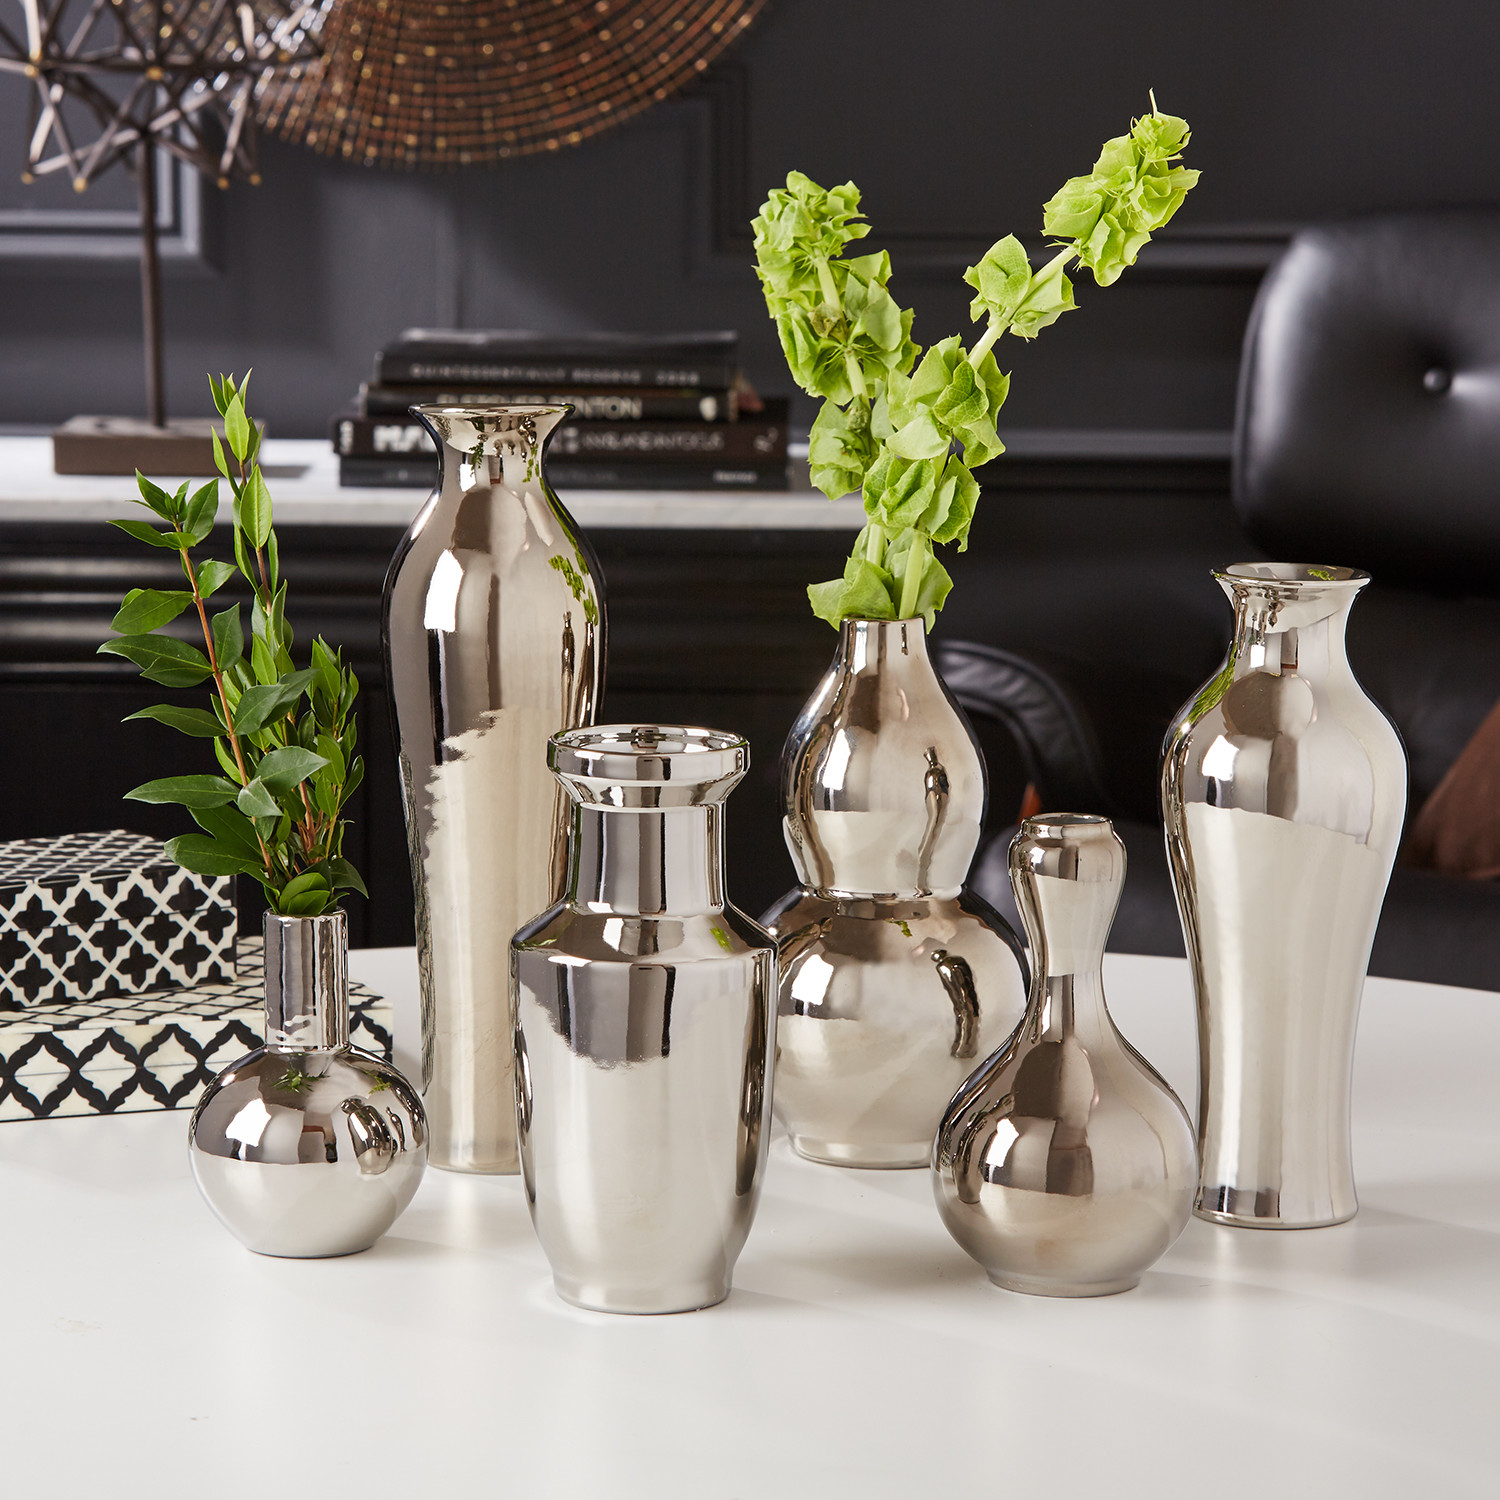 tozai home vase of twos company bookshelf styling tips pertaining to set of 6 traditional silver vases